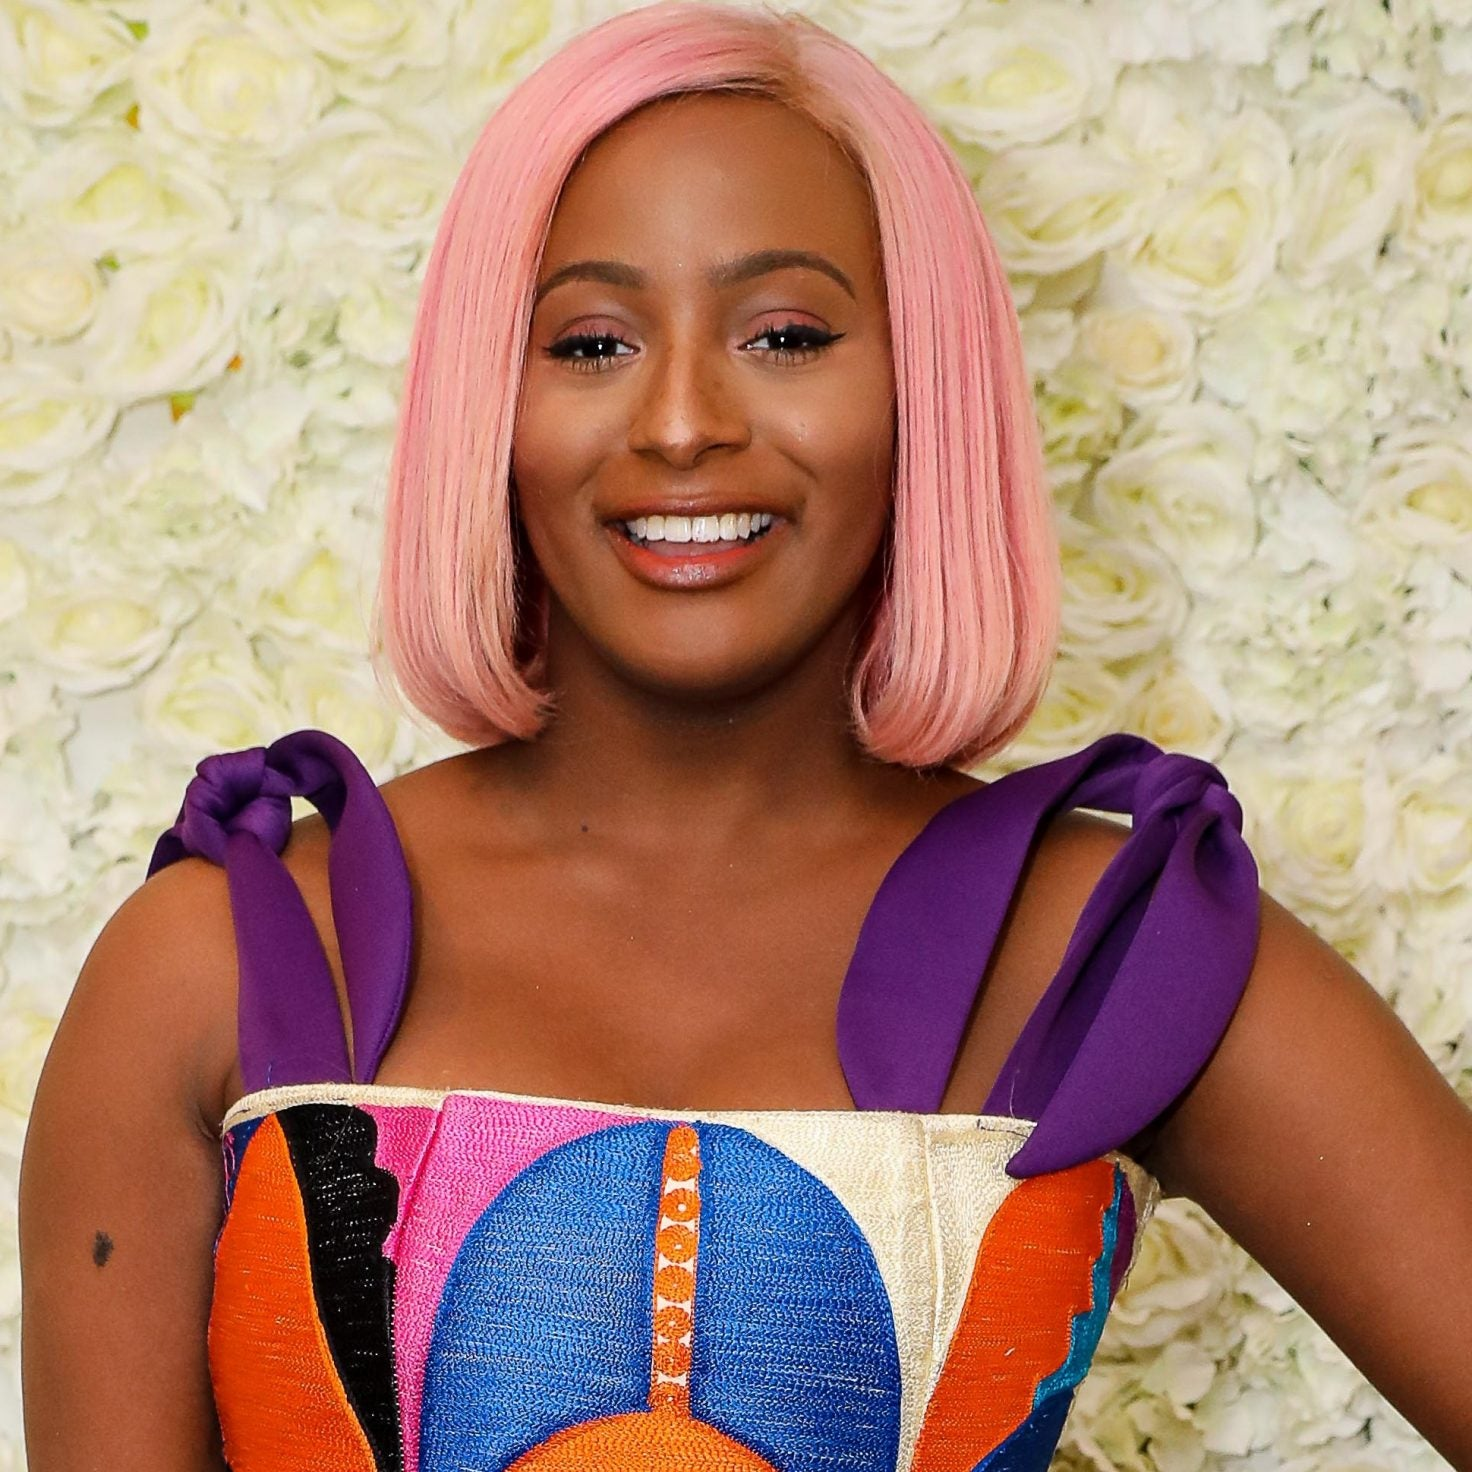 Nigeria's DJ Cuppy Tapped As Host of Apple Music's African Now Radio Show